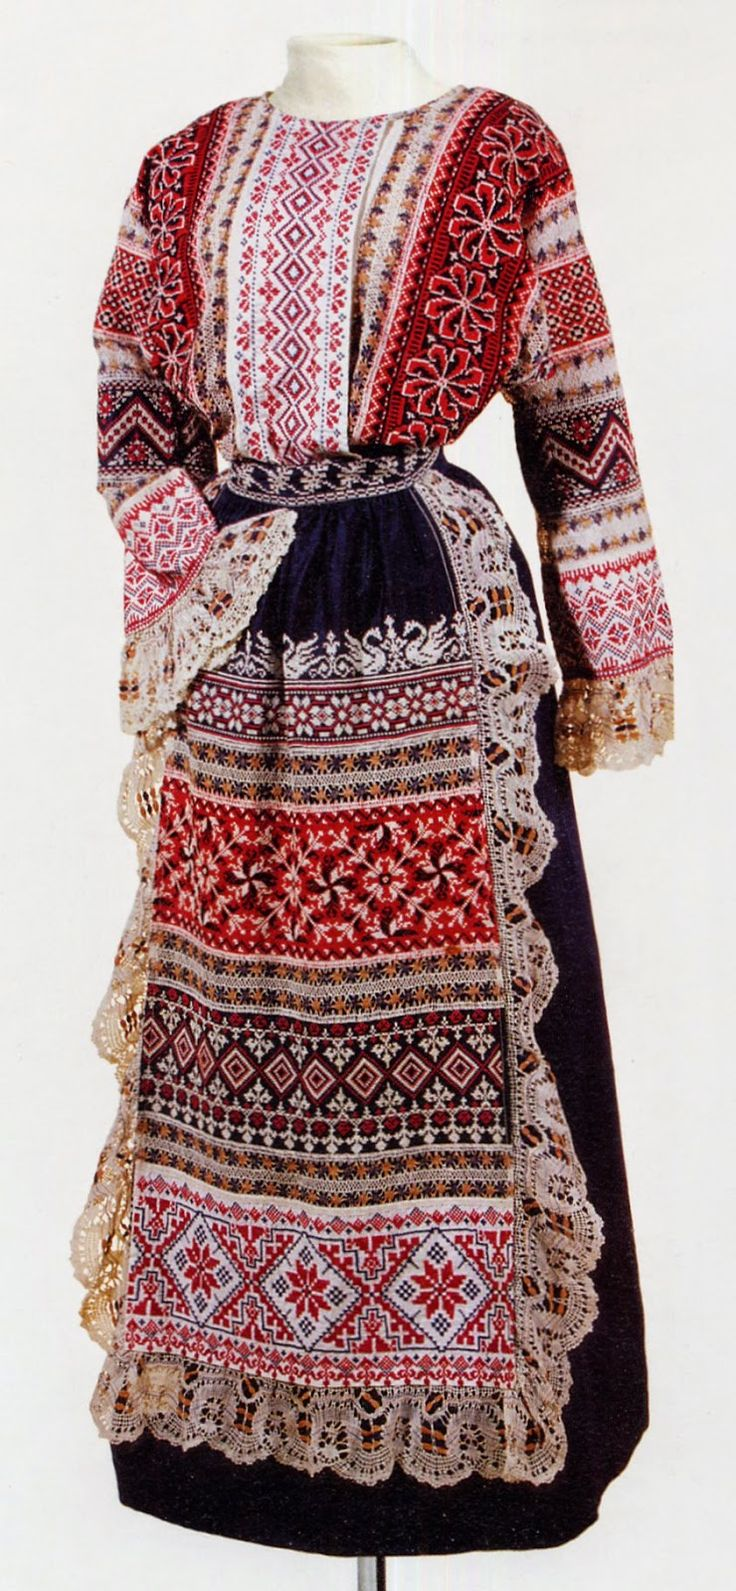 An example of a folk-style dress that was popular among Russian provincial ladies of the middle class in the late 19th – early 20th century.